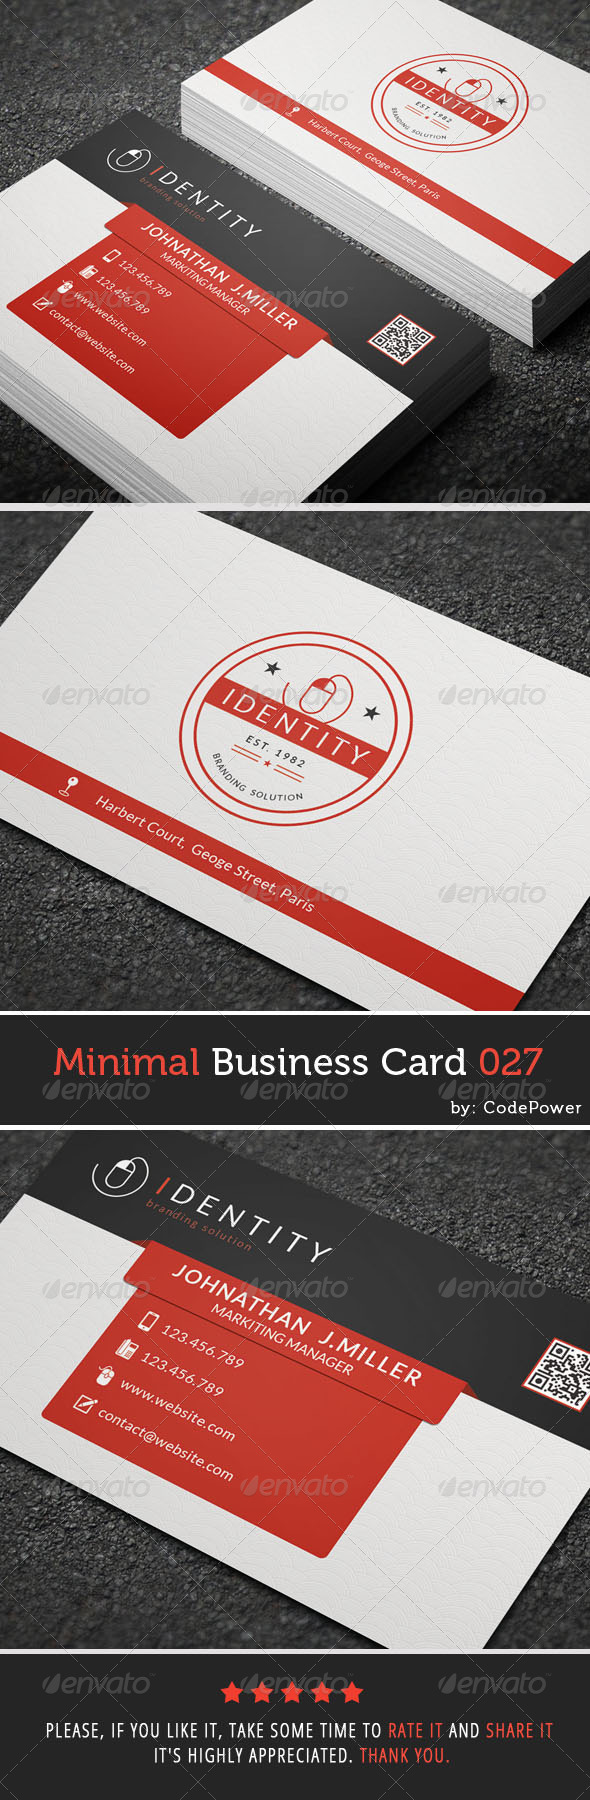 GraphicRiver Minimal Business Card 027 7665963